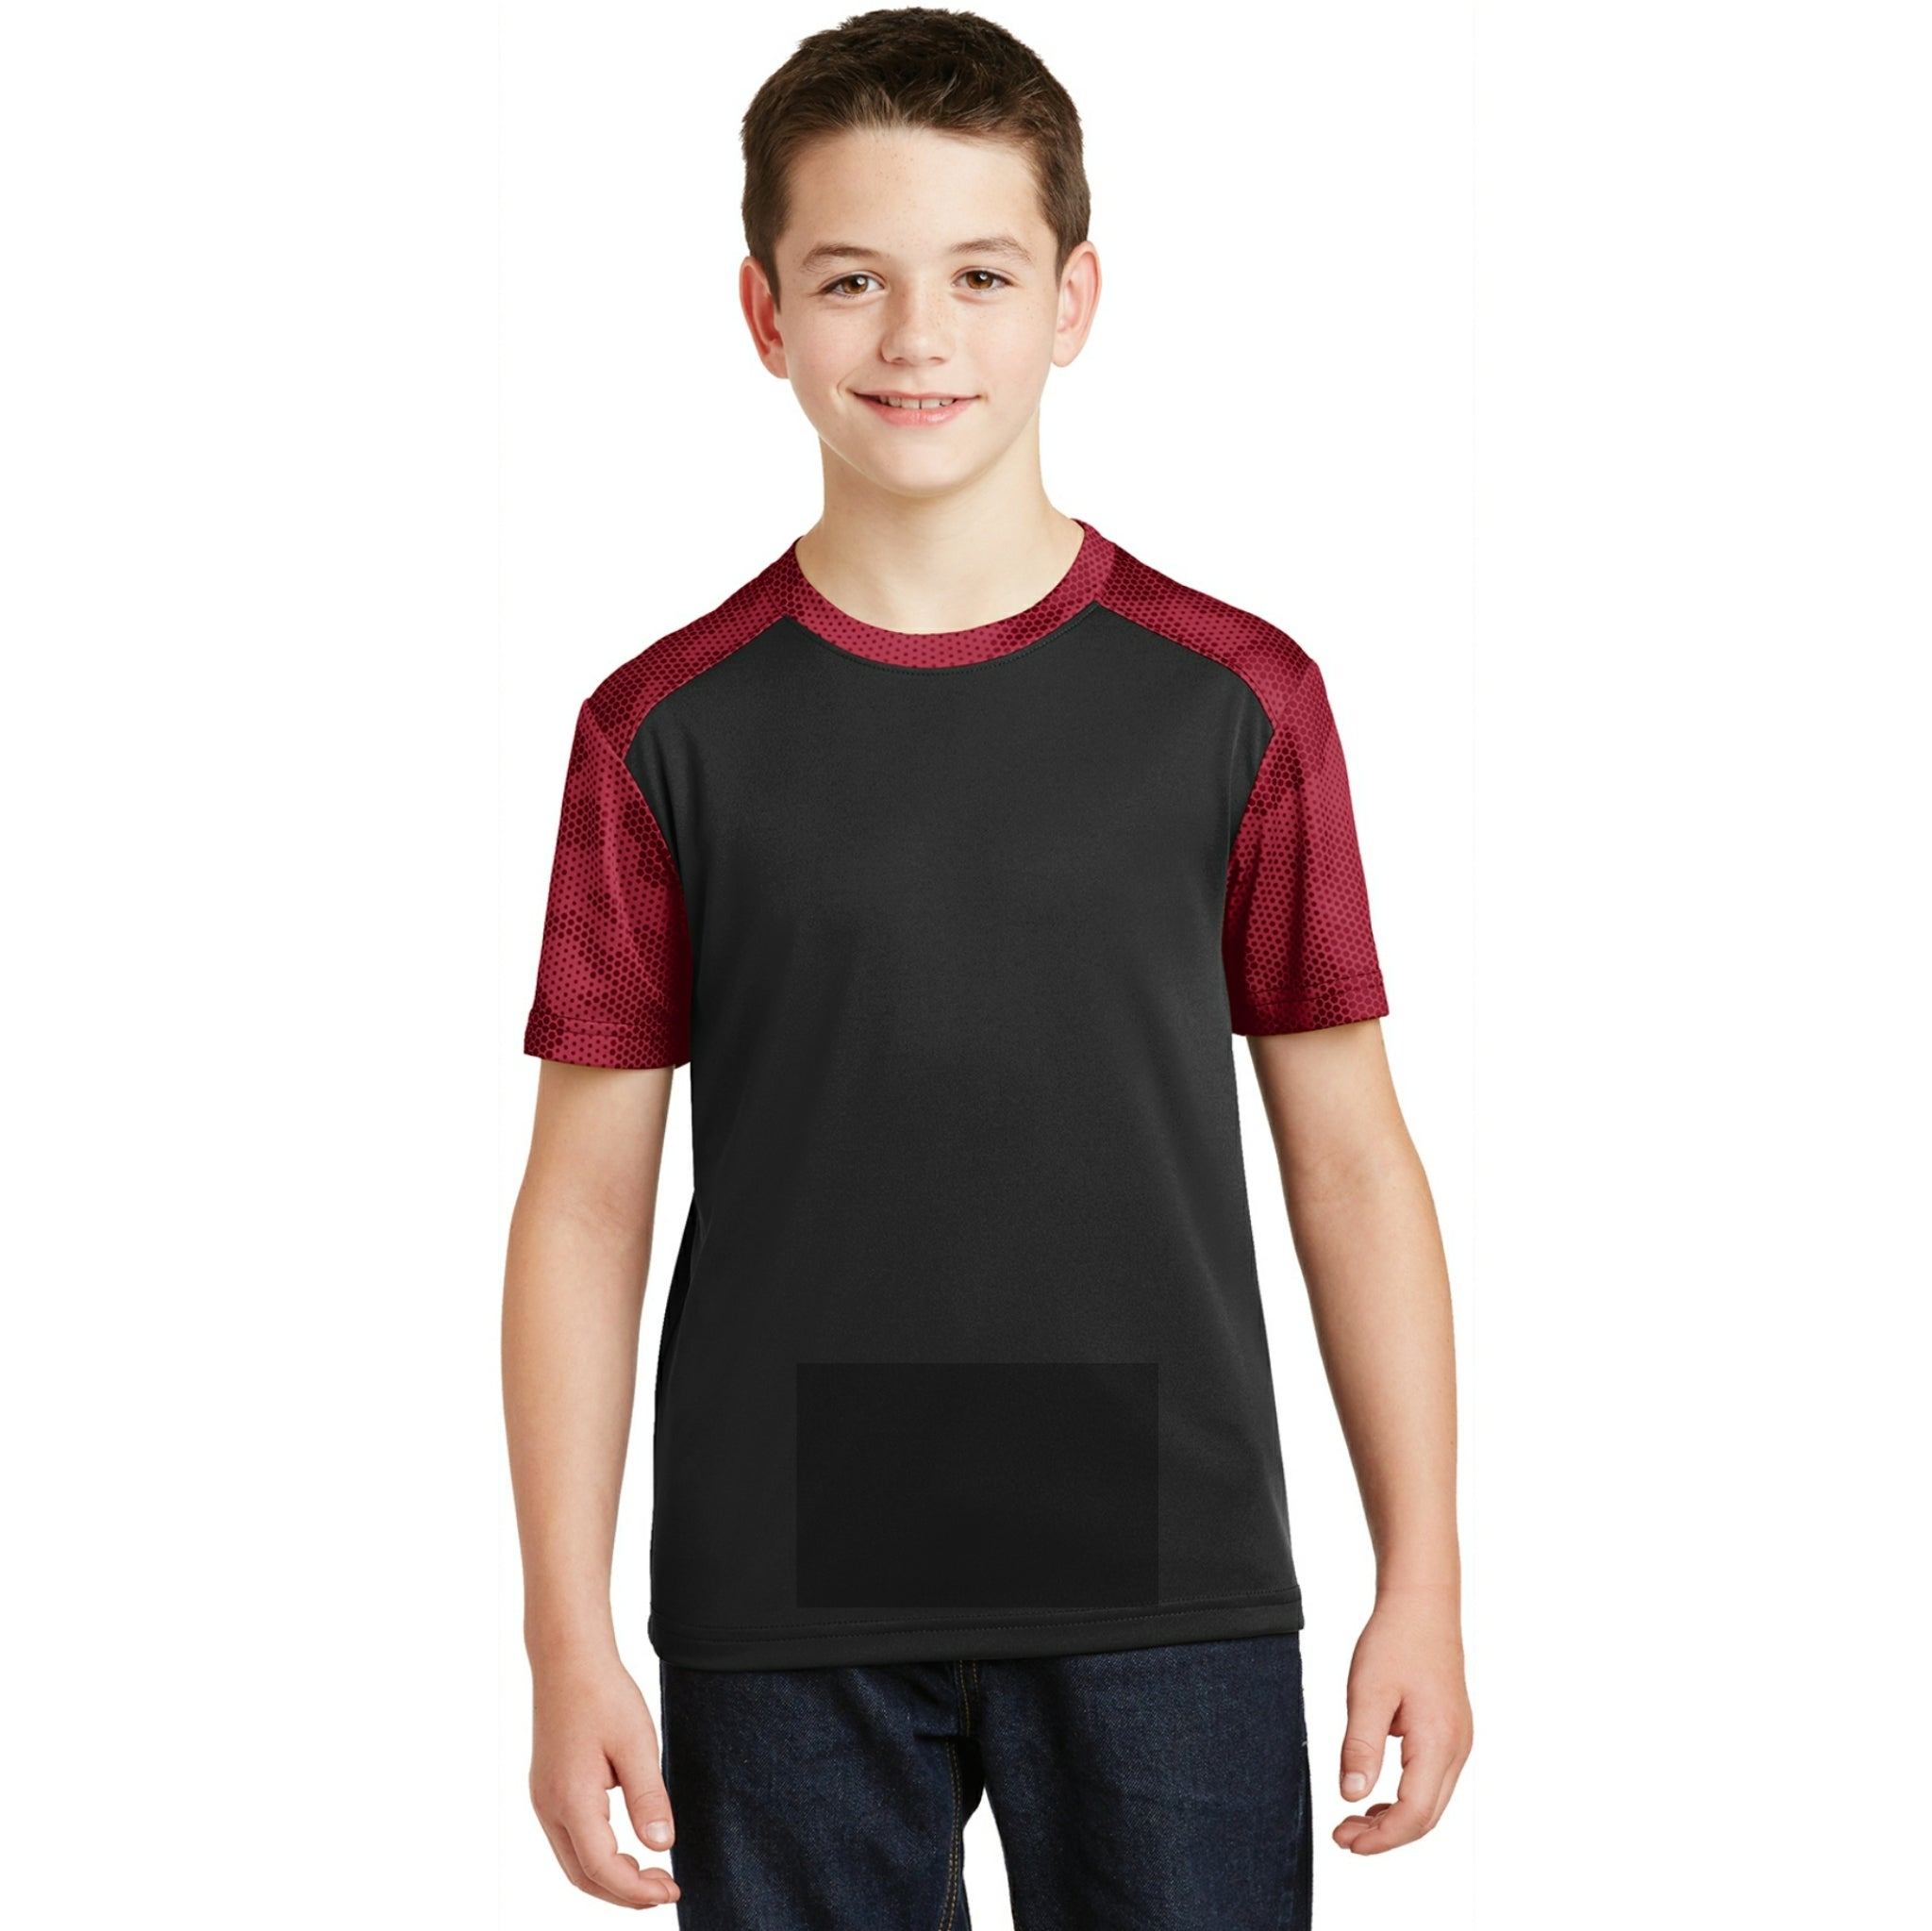 attached front panel camohex colorblock children's tee Black/Deep Red Camohex